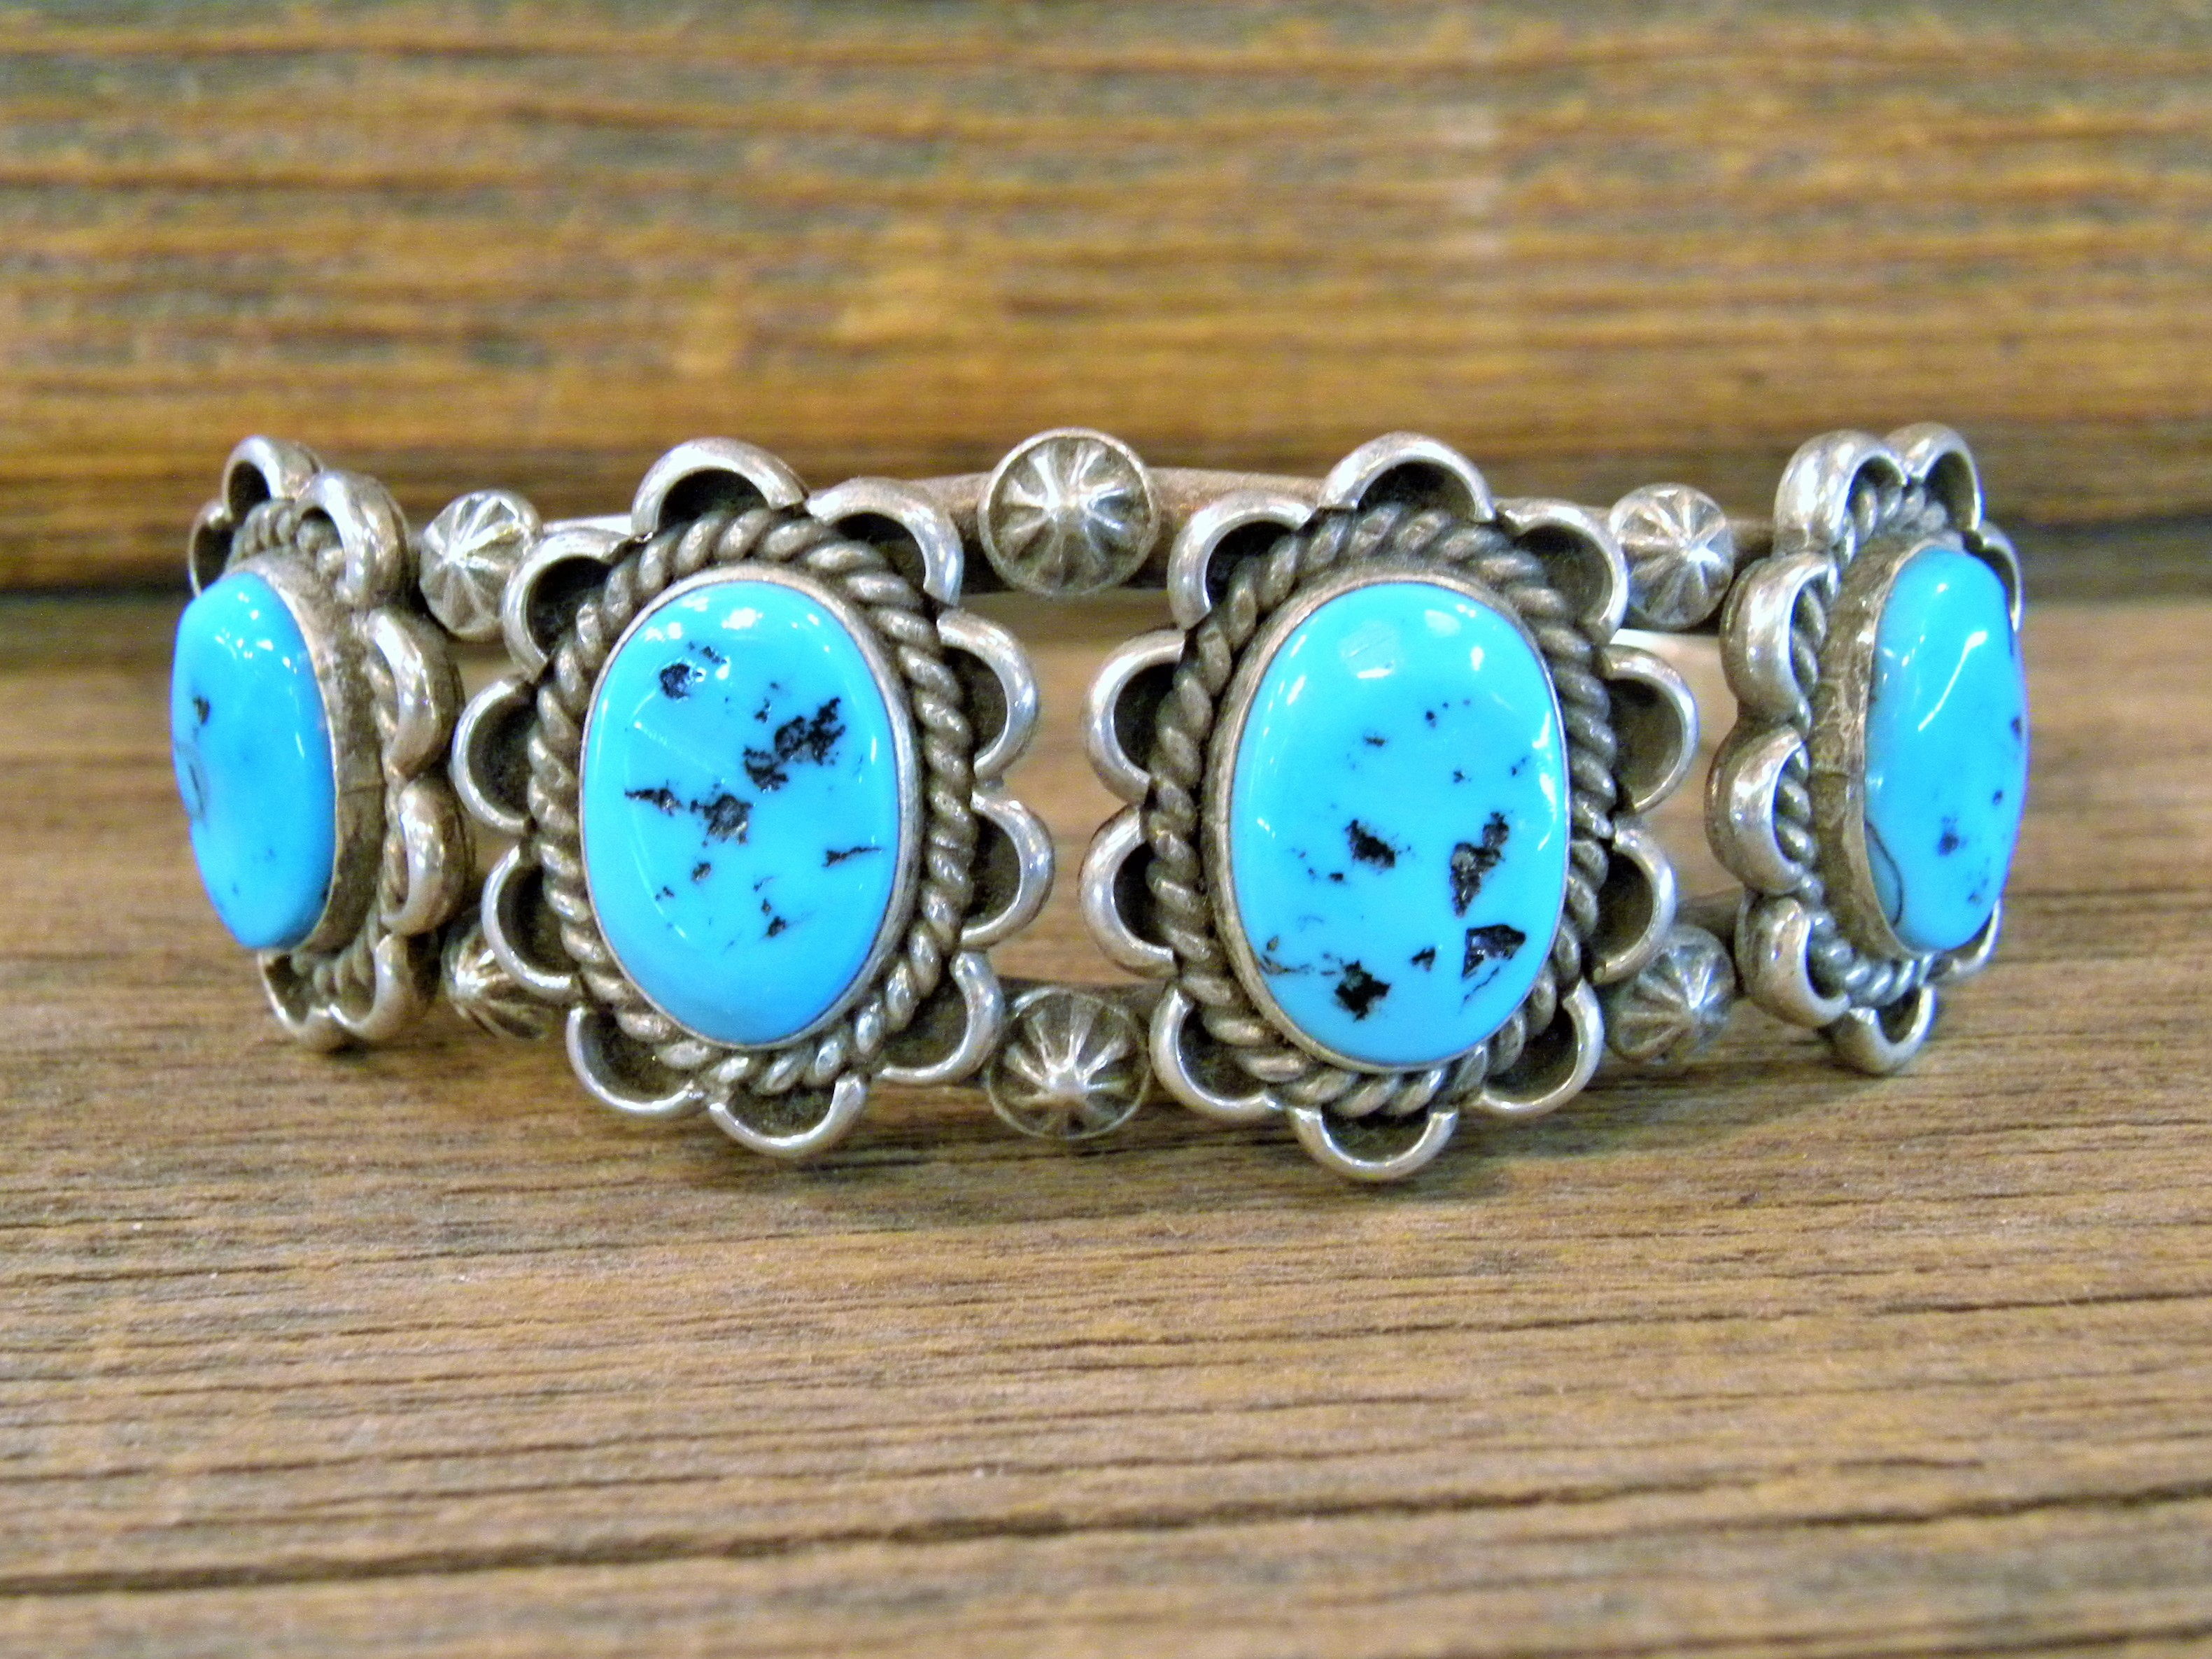 silver trading jpg post american navajo bracelets native turquoise rock rectangle bracelet eagle